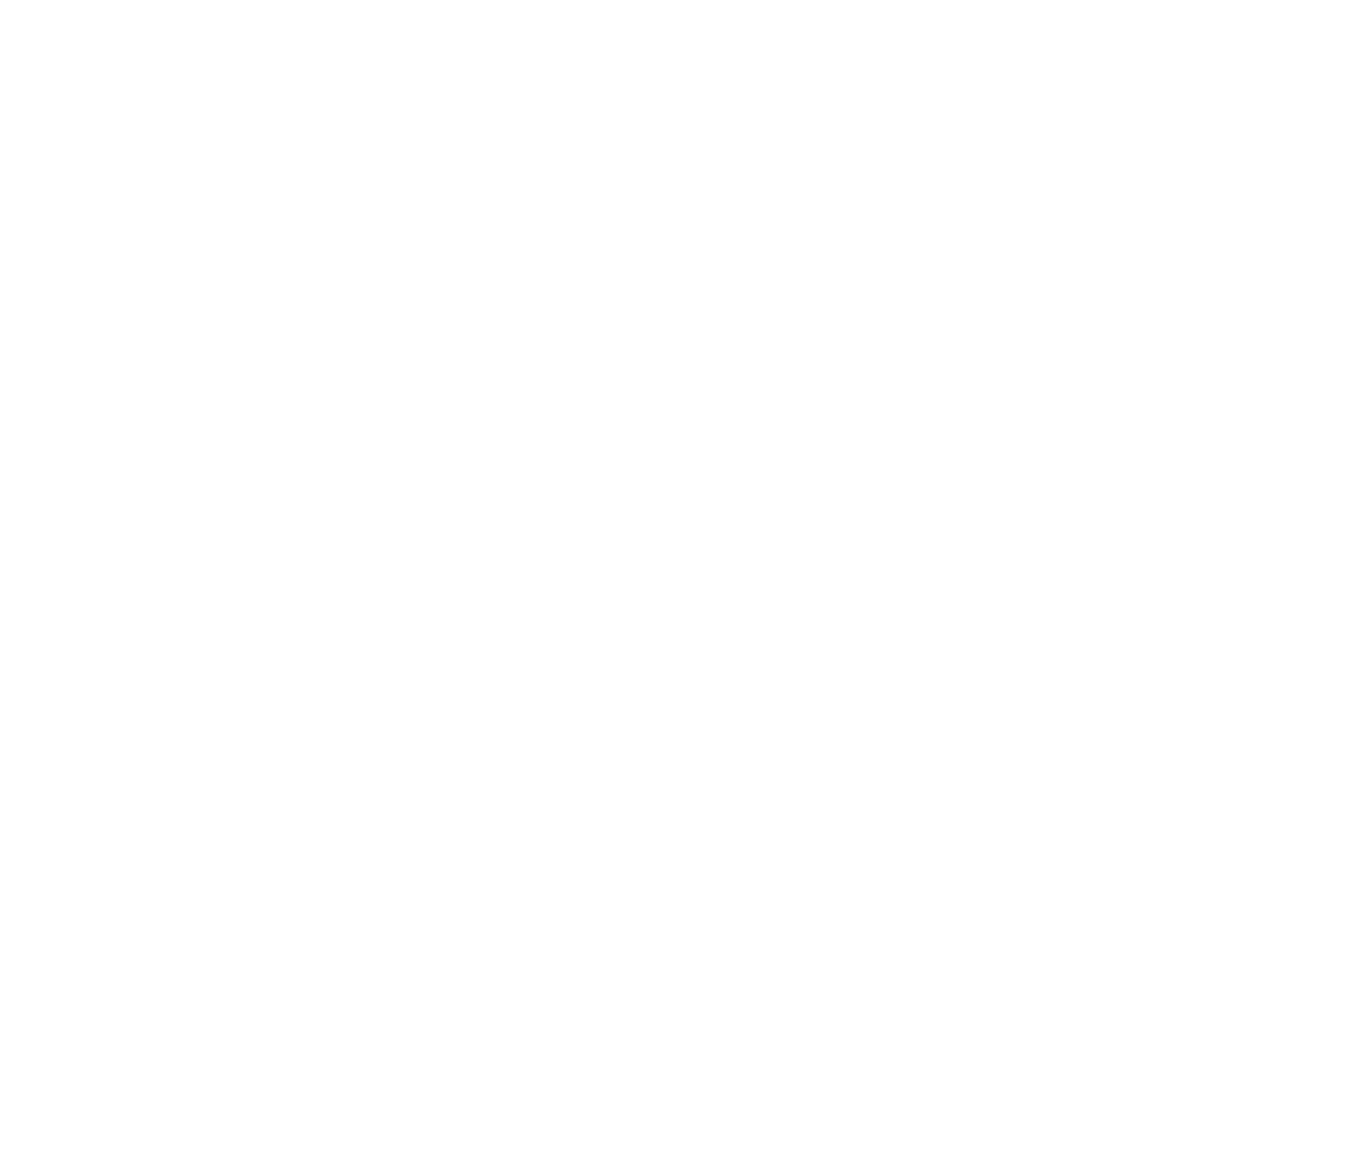 NPUInitiative_white.png